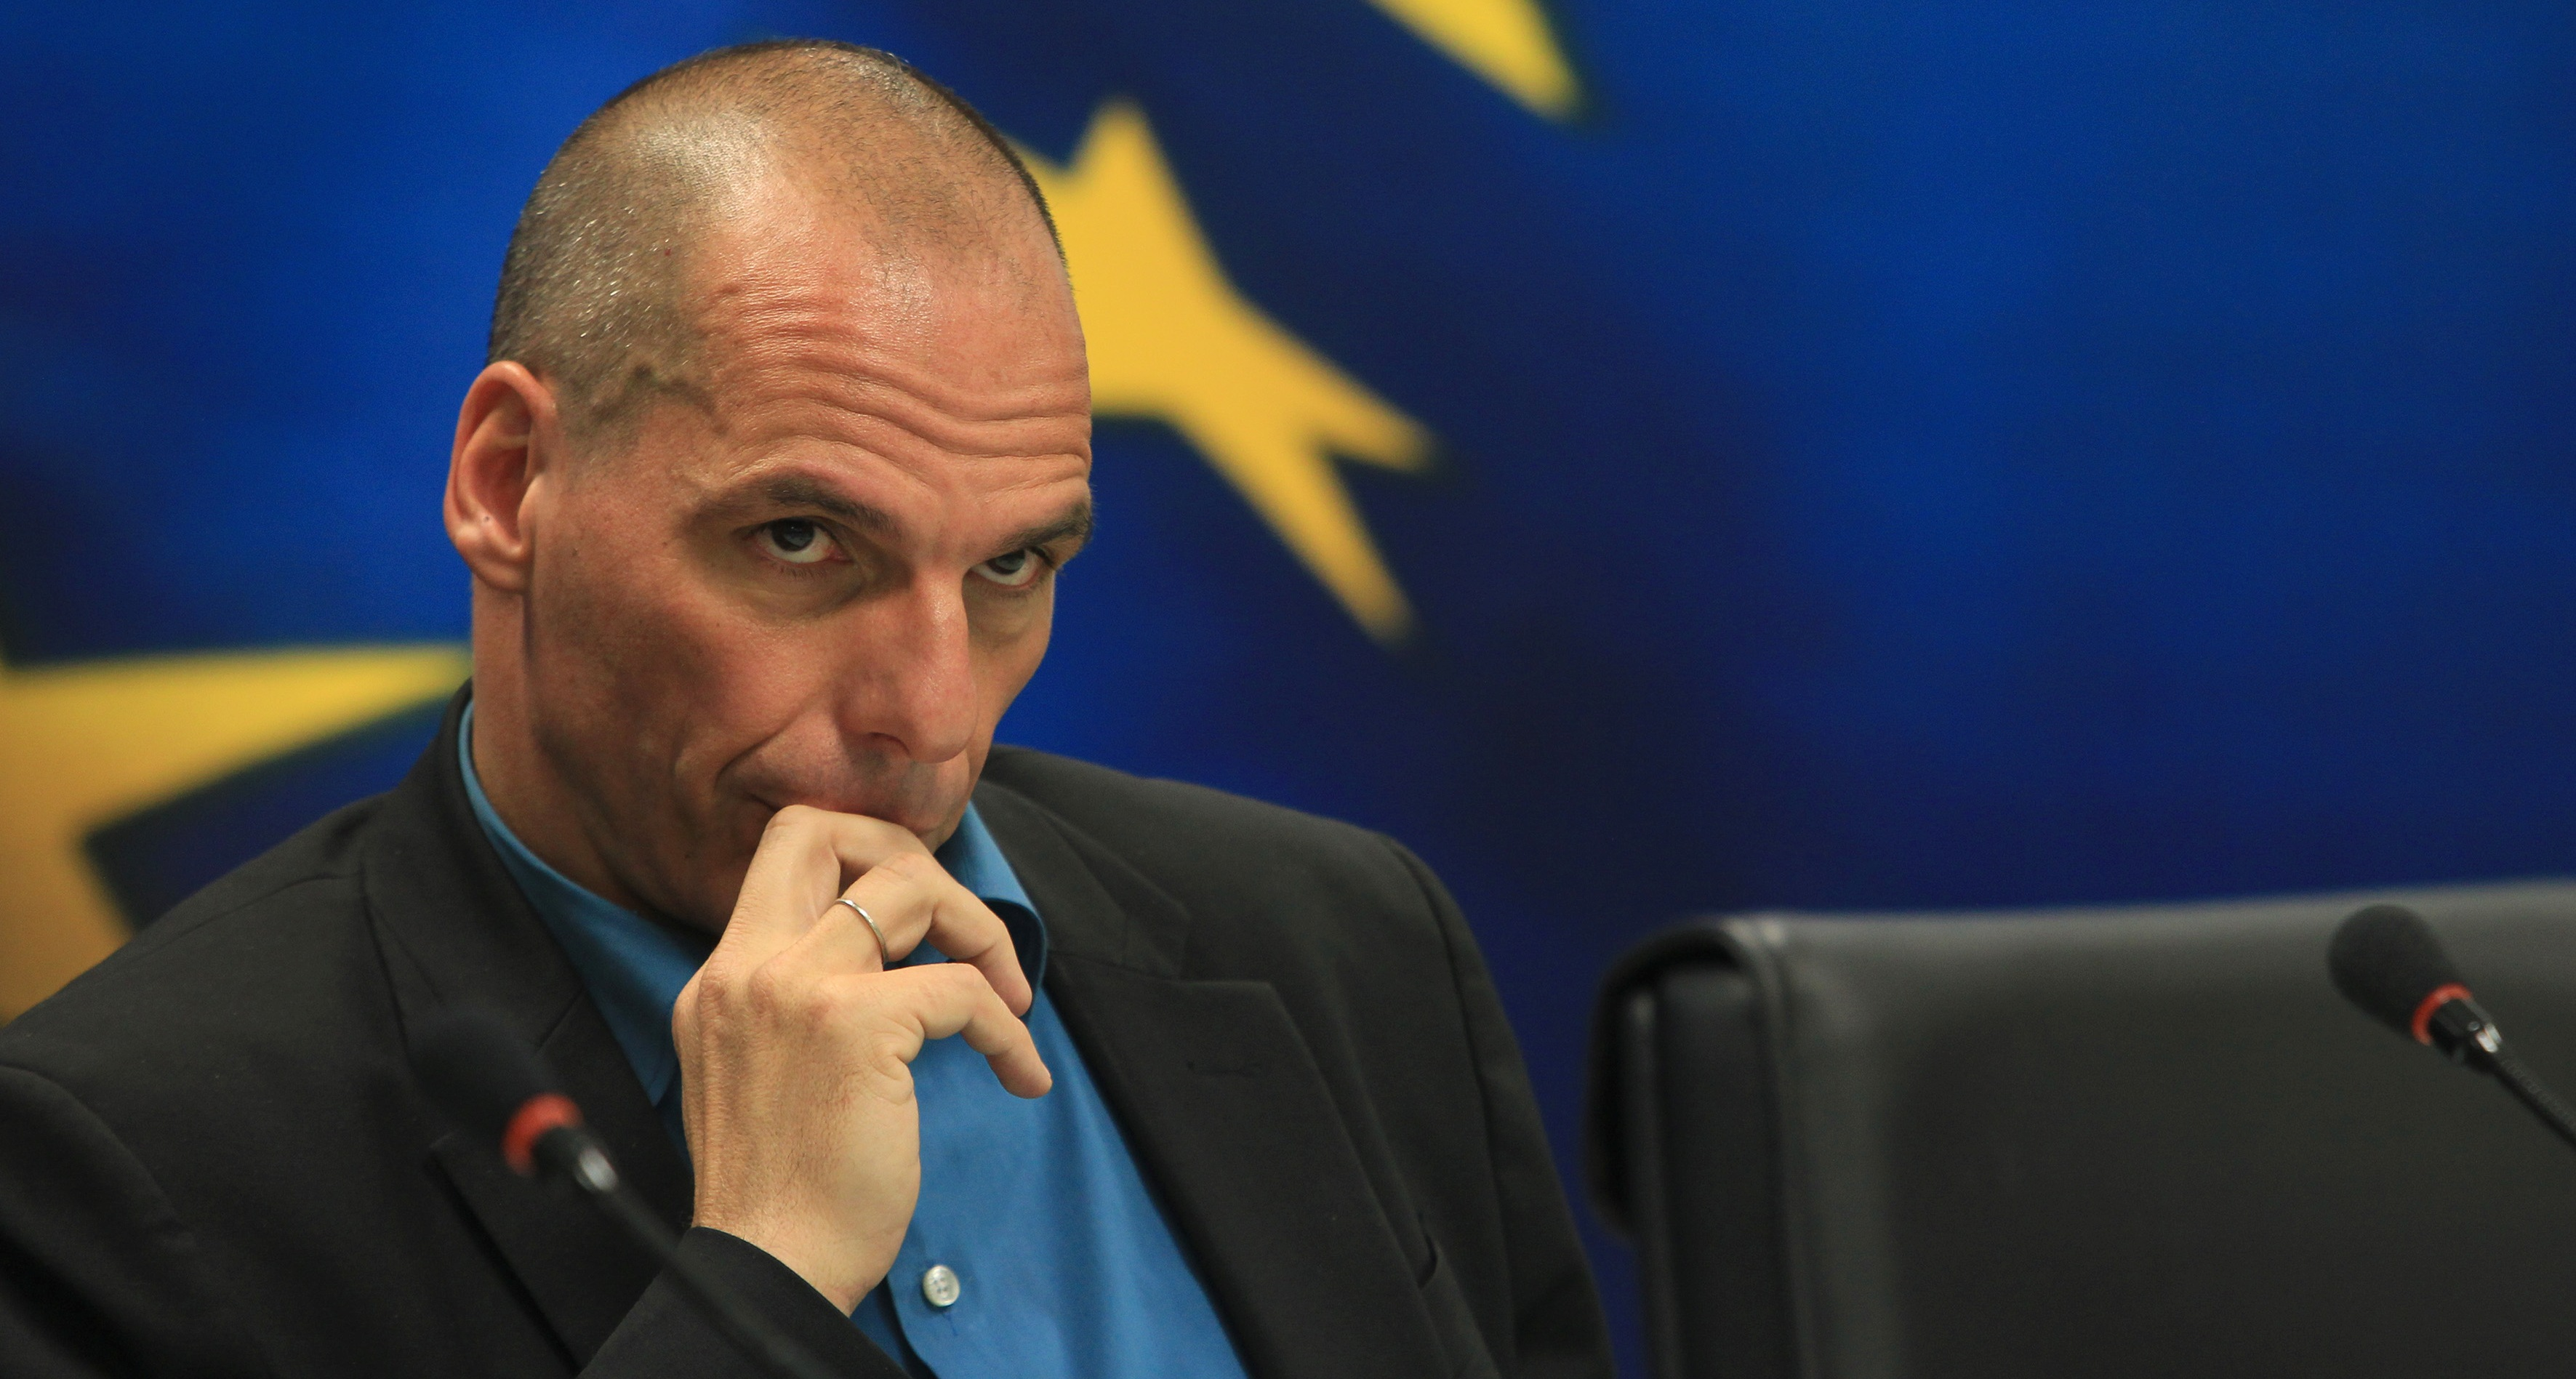 Emergency Sworn Administrative Inquiry for Varoufakis' hacking